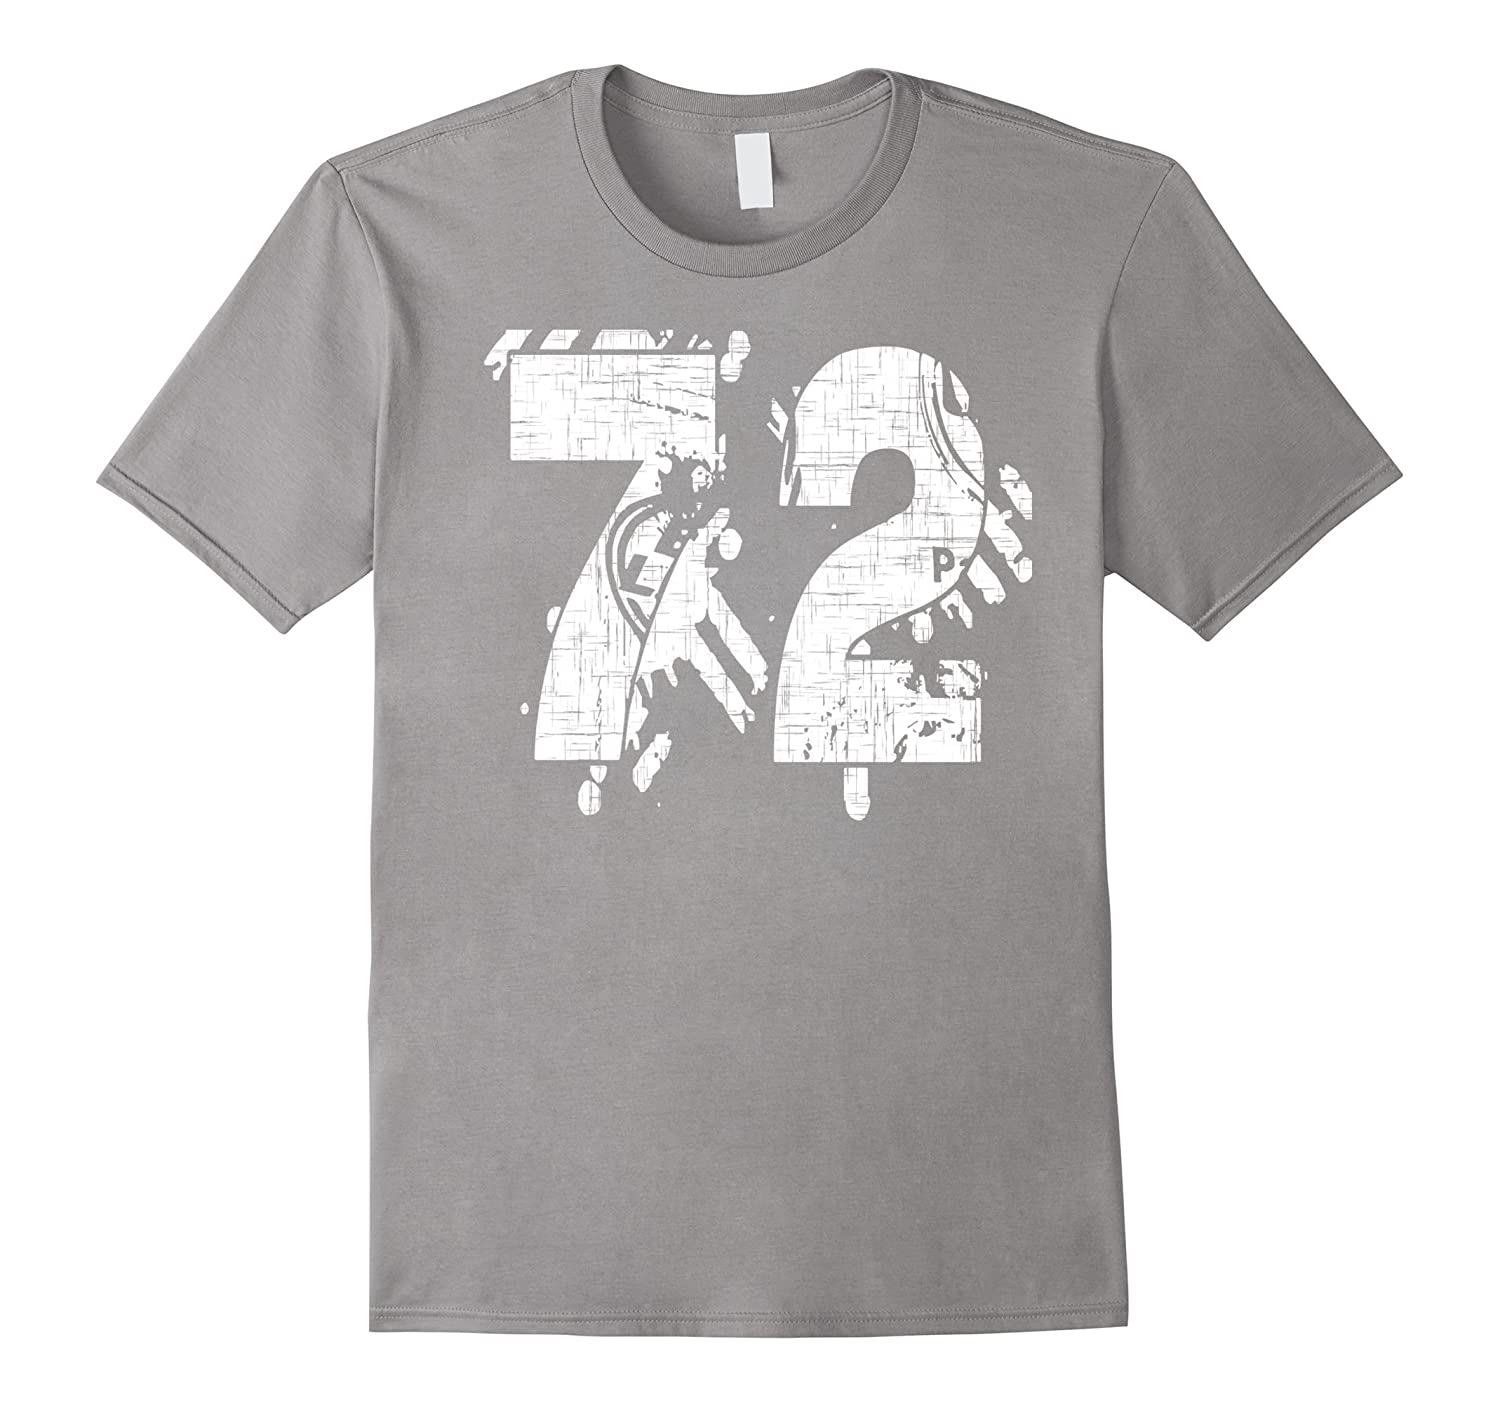 72 Numbered T-Shirt printed front and back in super grunge-PL